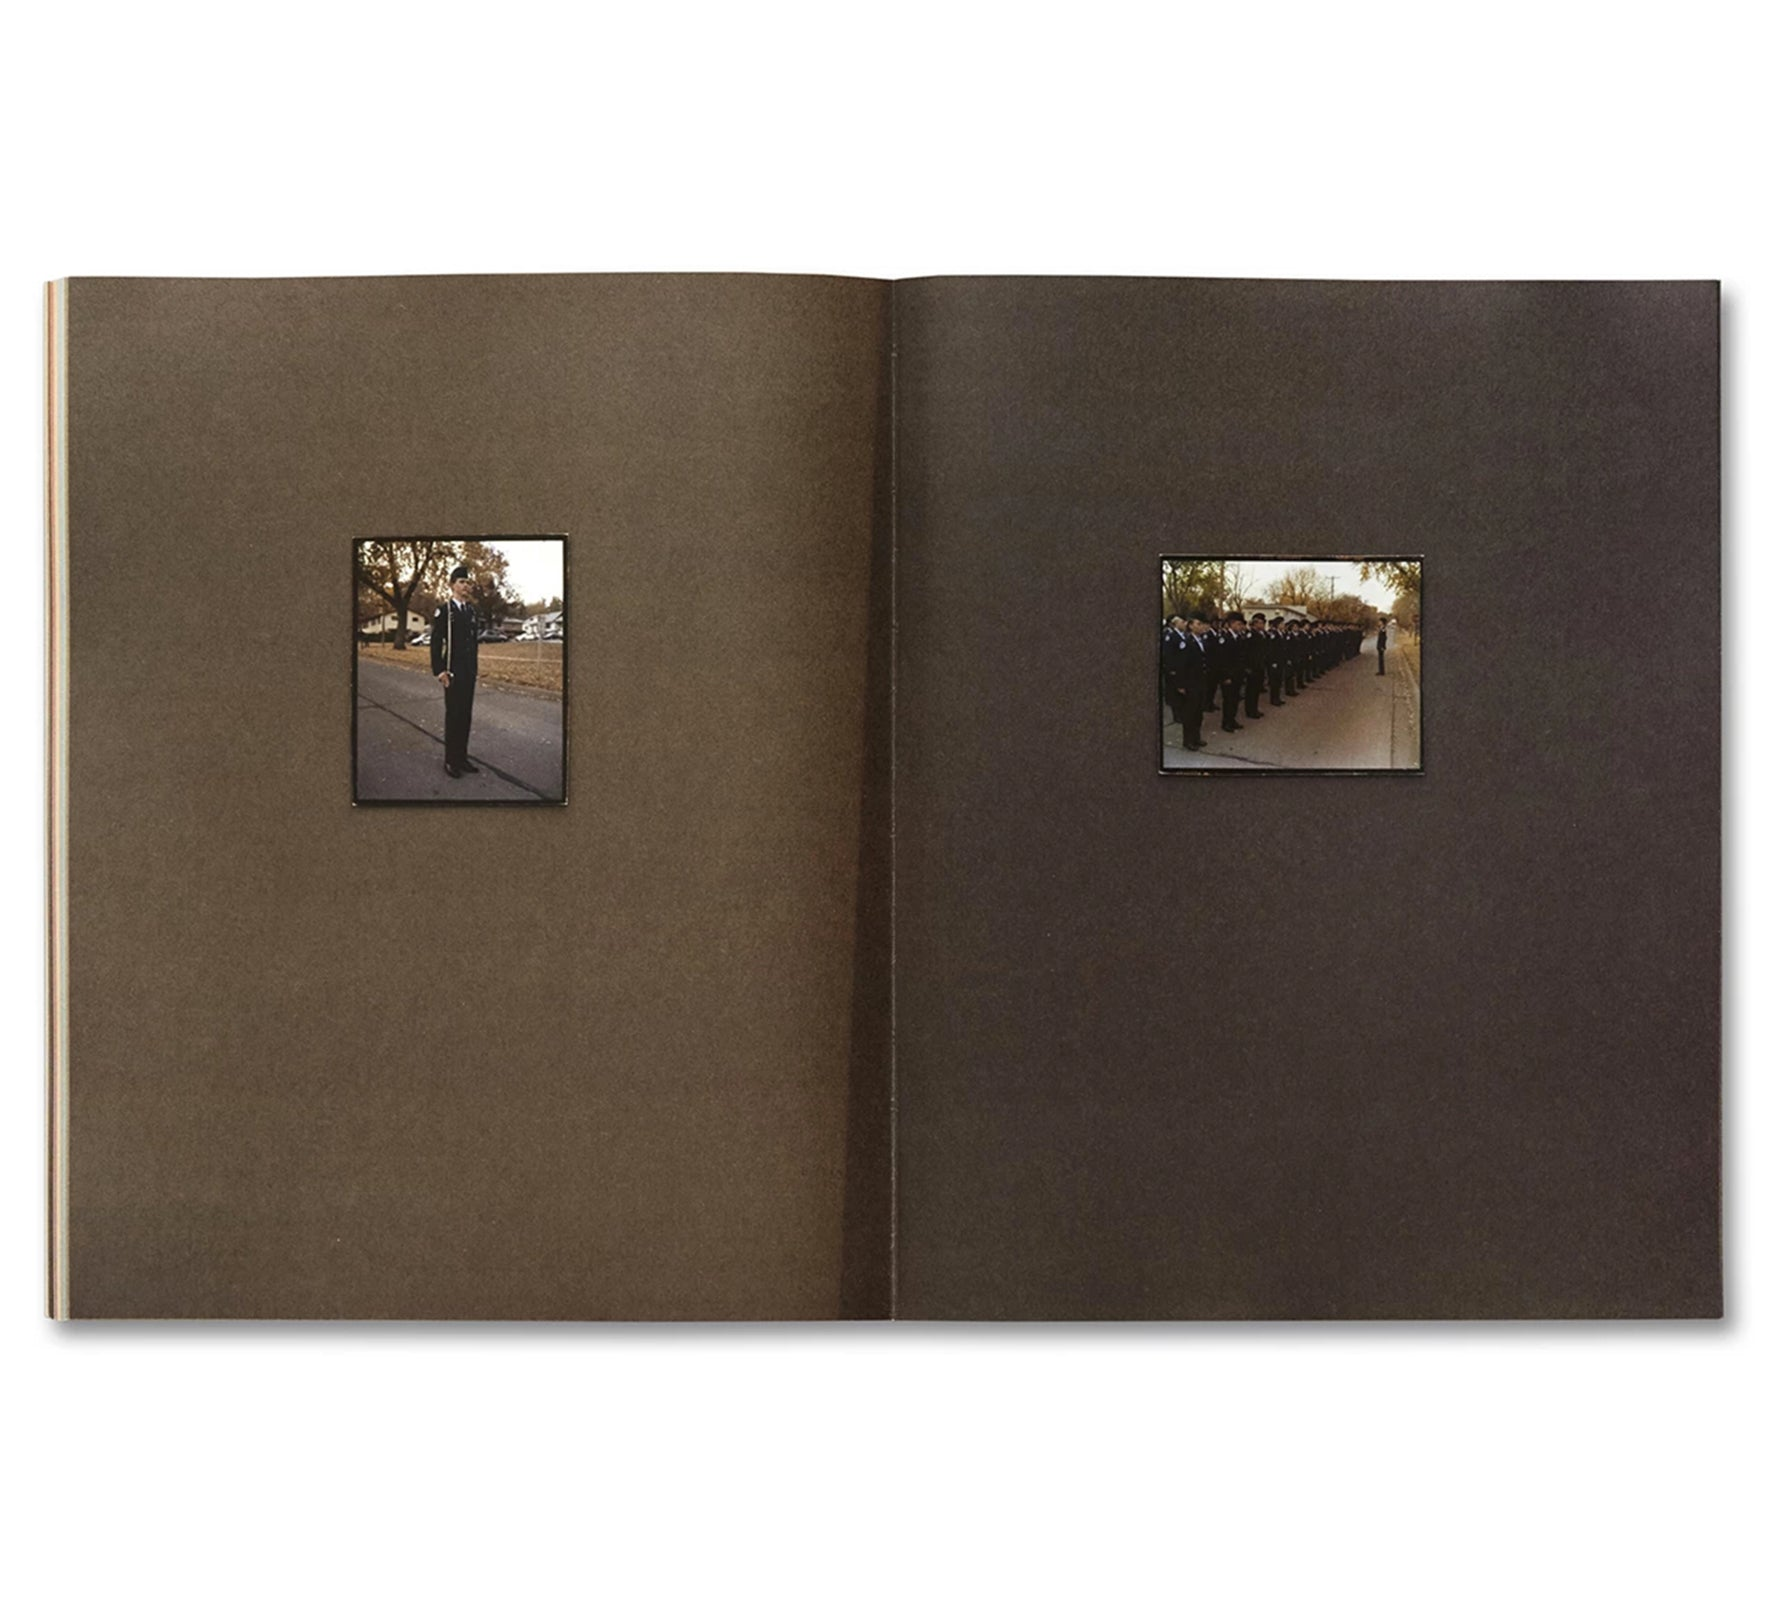 OMAHA SKETCHBOOK by Gregory Halpern [SPECIAL PRINT EDITION]